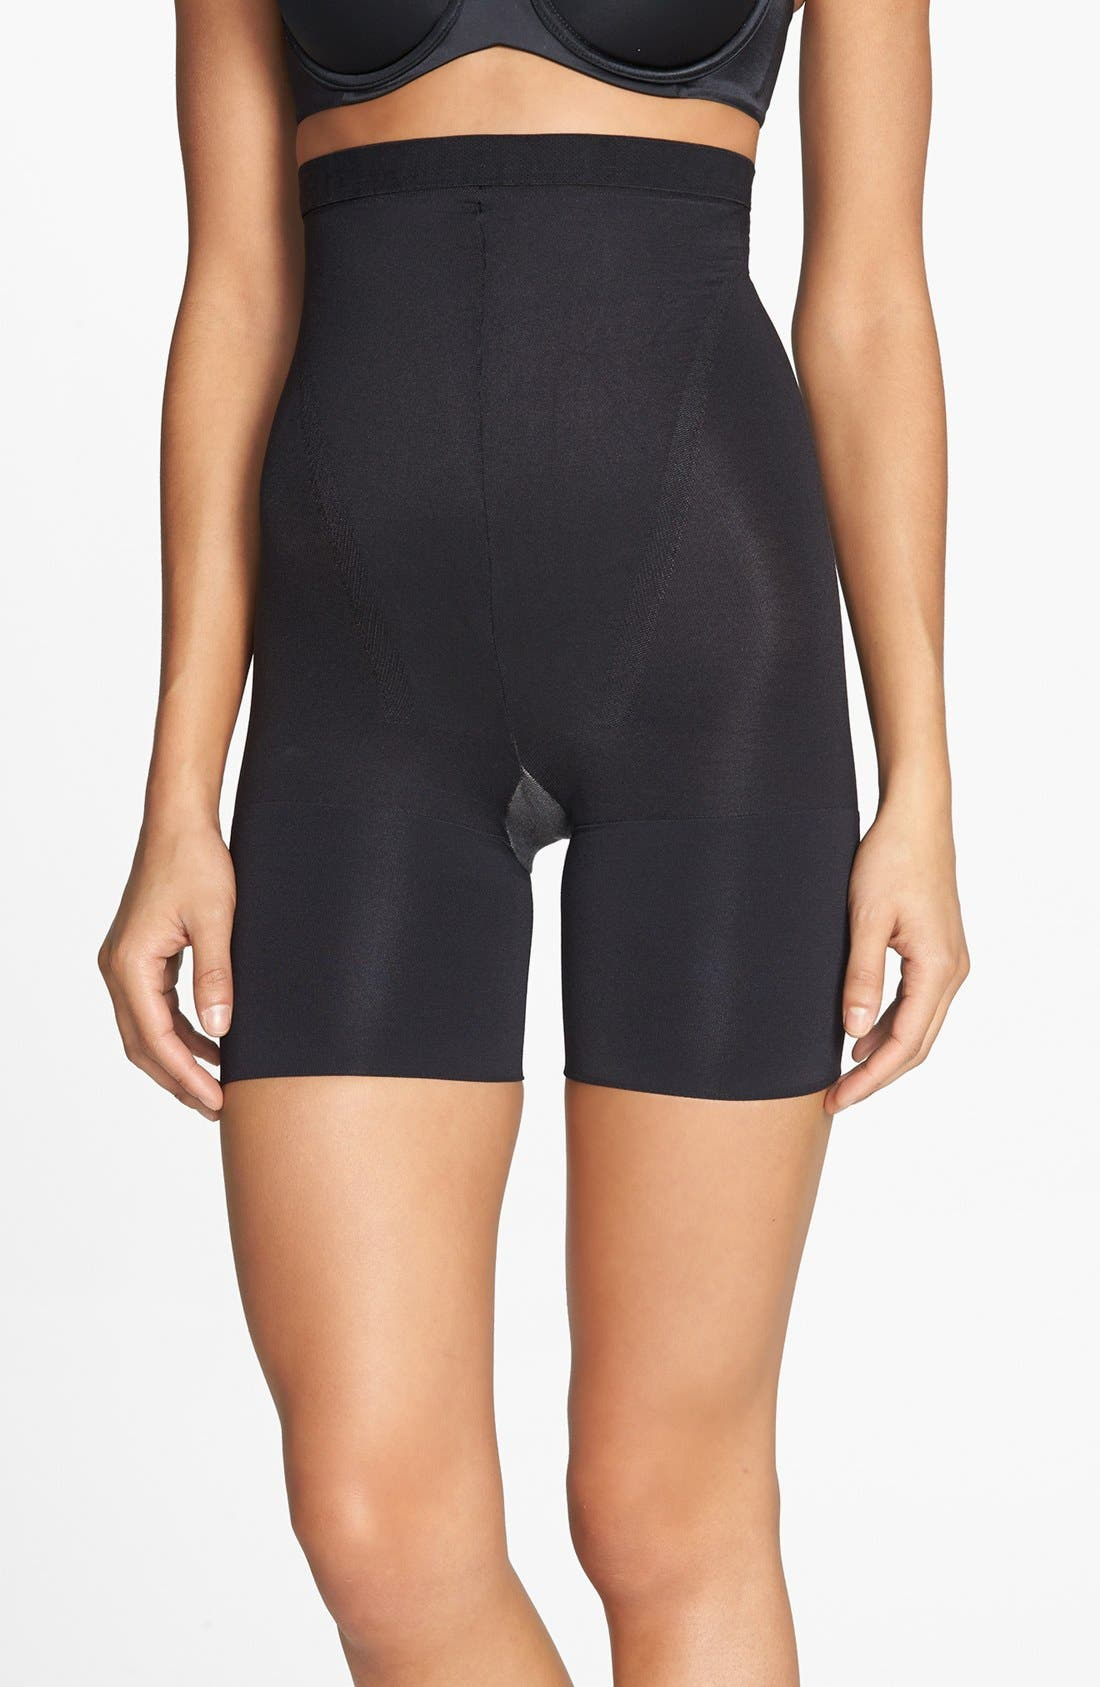 Alternate Image 1 Selected - SPANX® 'In-Power Line' Super Higher Power Tummy Control Shaper (Regular & Plus Size) (Online Only)